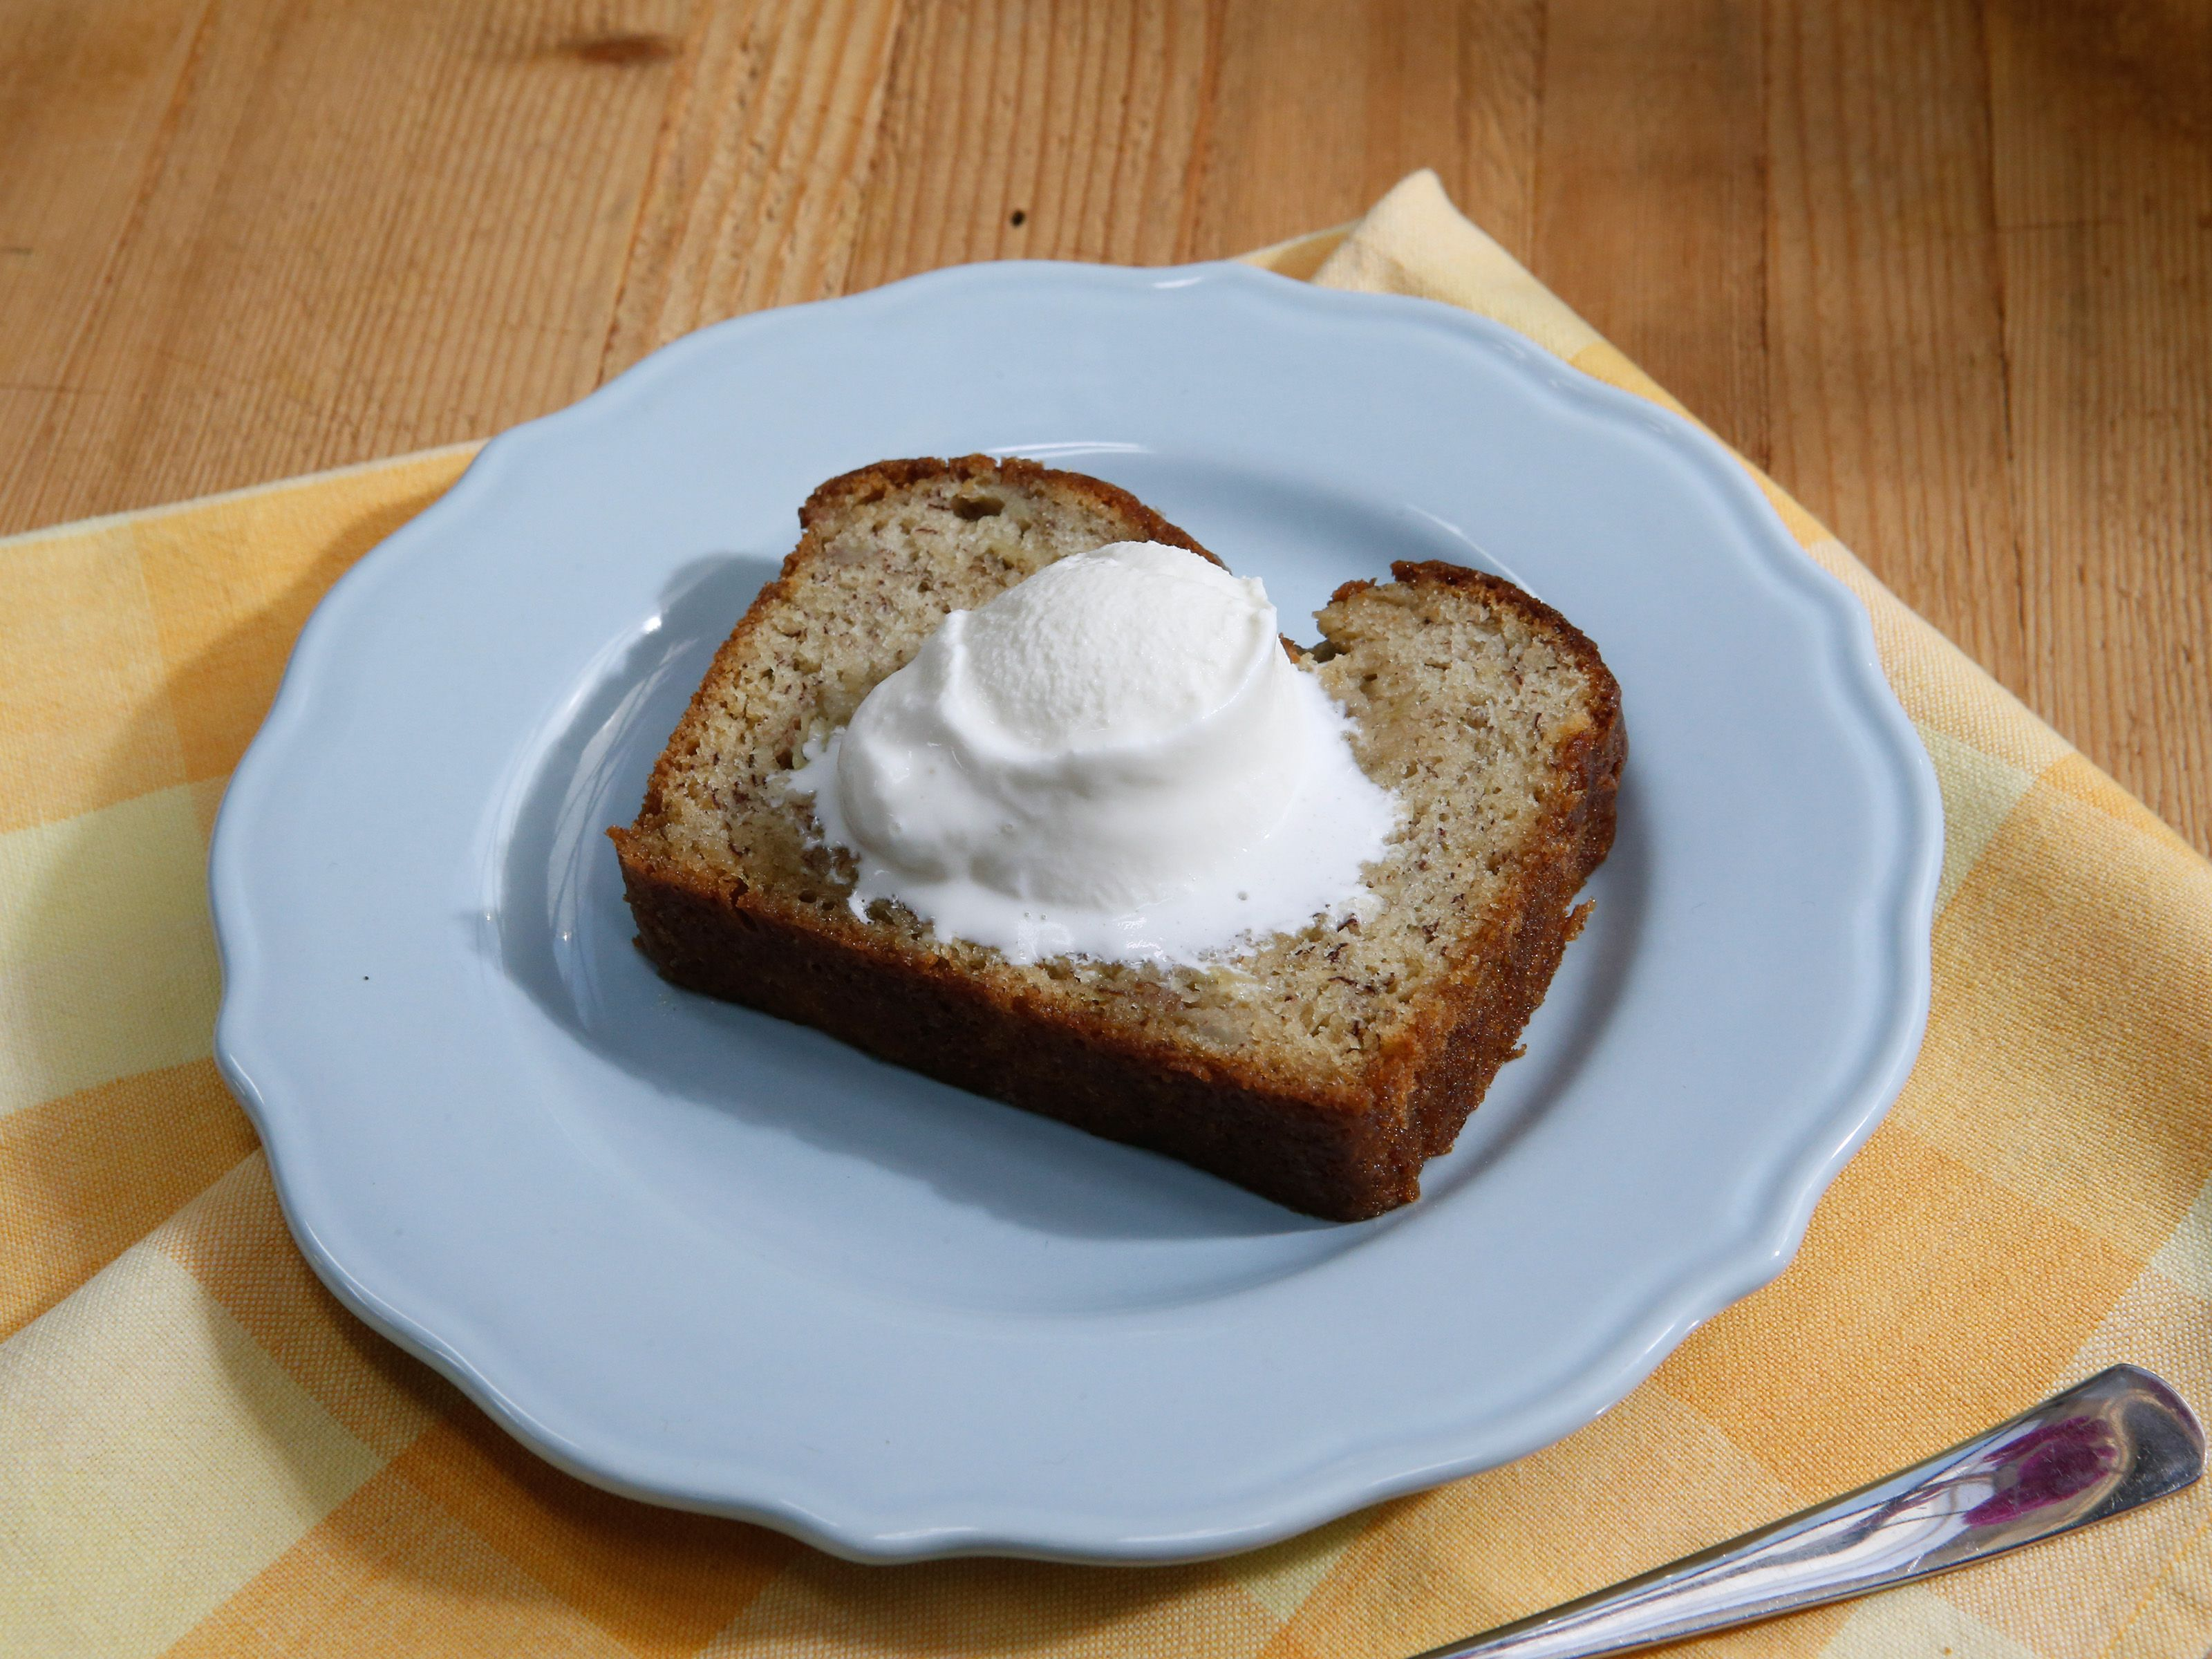 Bananas foster banana bread sundae recipe from the kitchen via food bananas foster banana bread sundae recipe from the kitchen via food network forumfinder Gallery